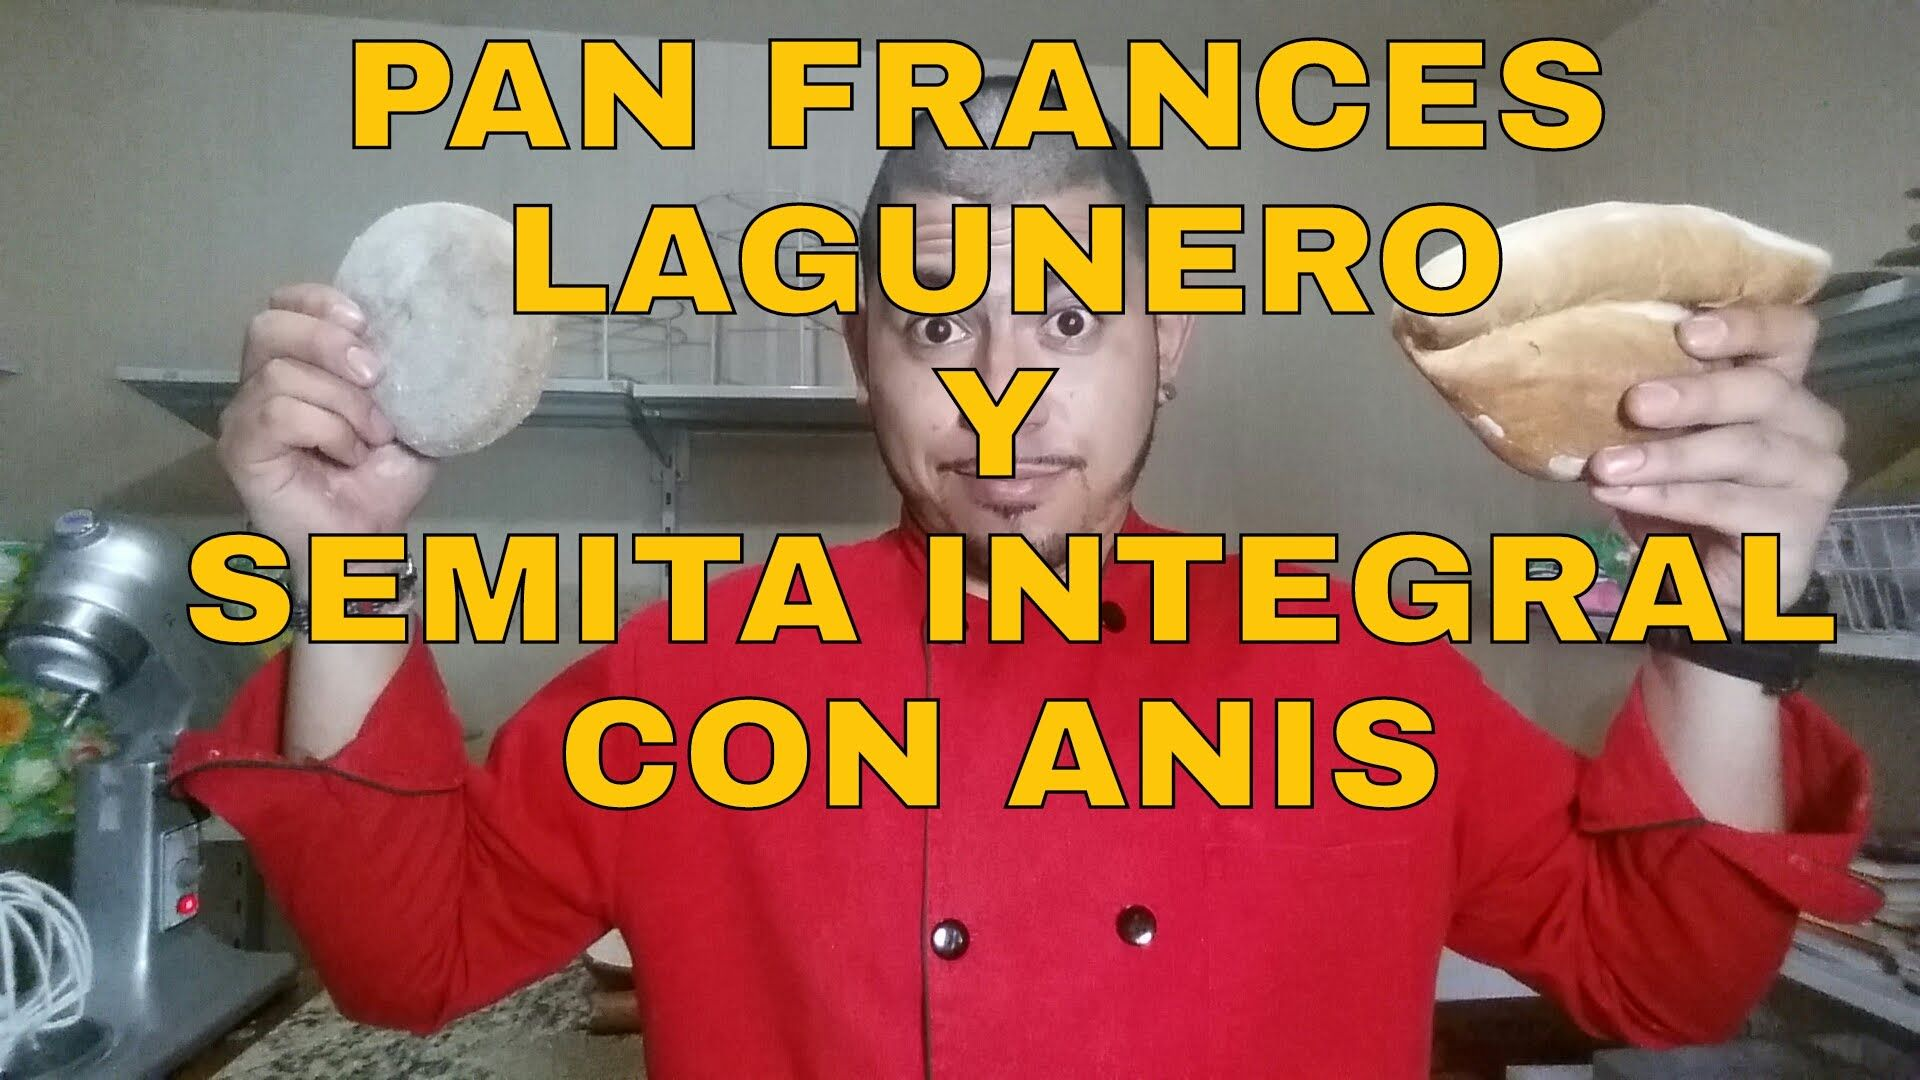 PAN FRANCES|LAGUNERO|SEMITA INTEGRAL CON ANIS|RECETA|ORIGINAL - YouTube